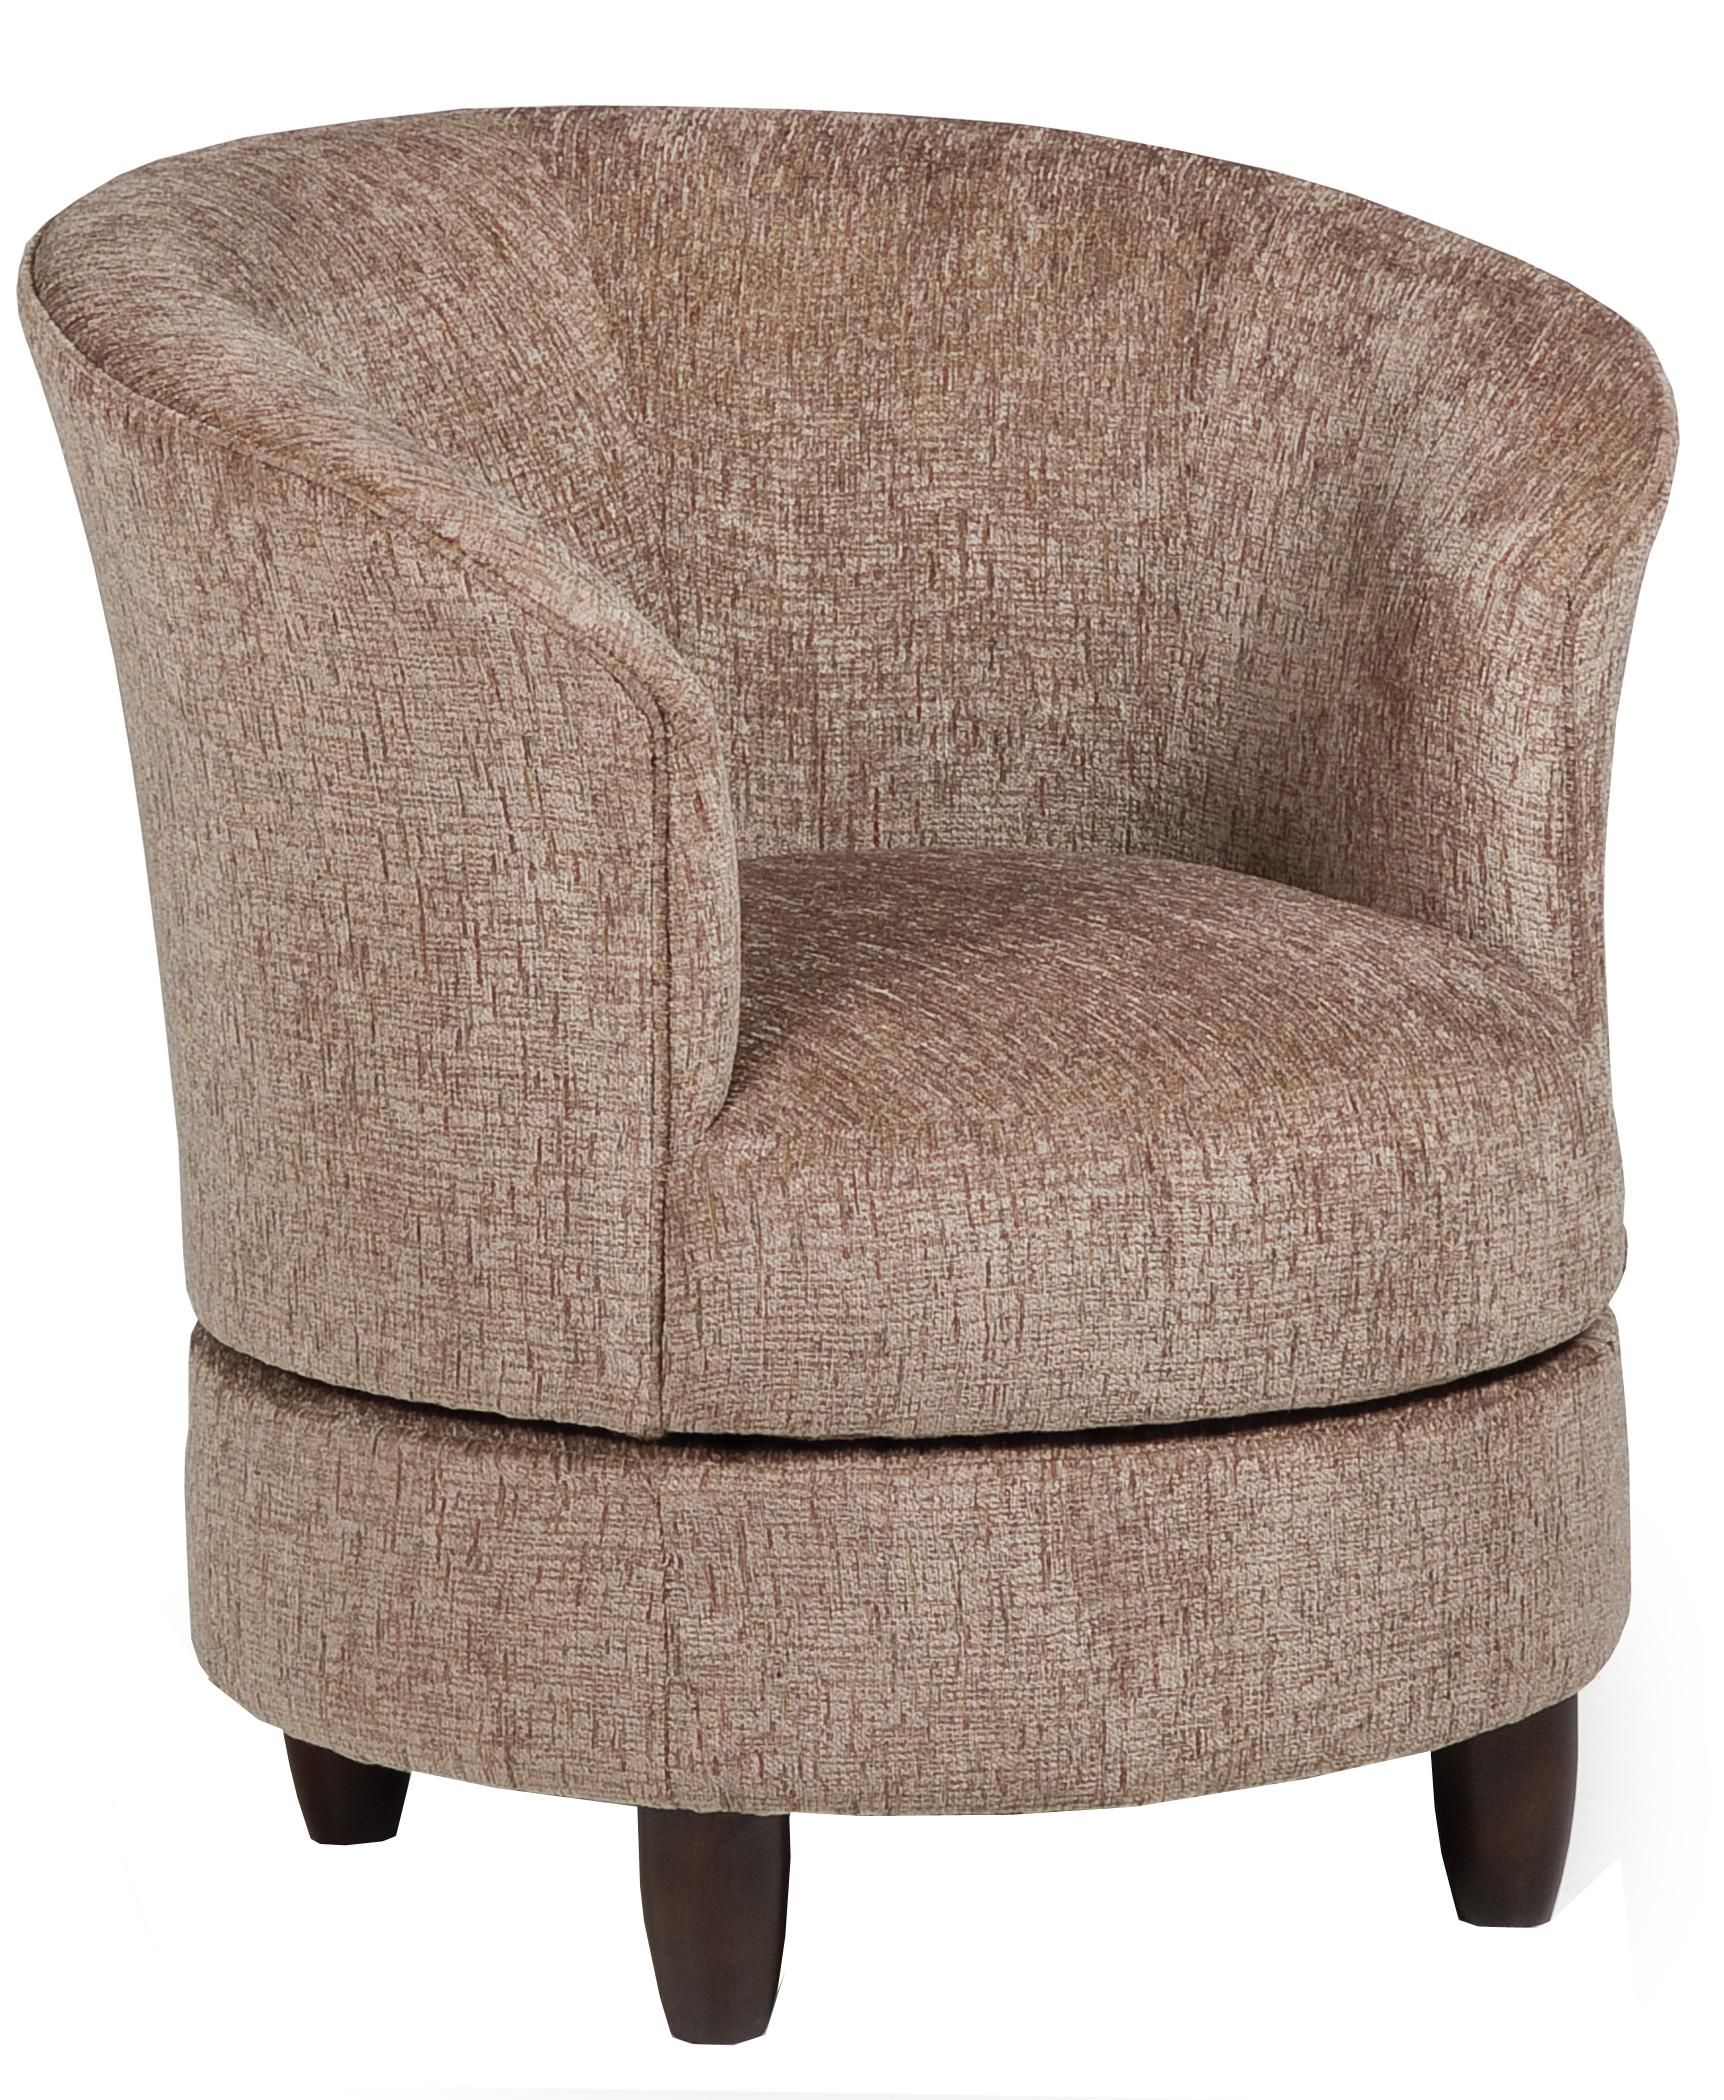 Best Swivel Chair Accent Chairs Swivel Barrel Chair By Best Home Furnishings